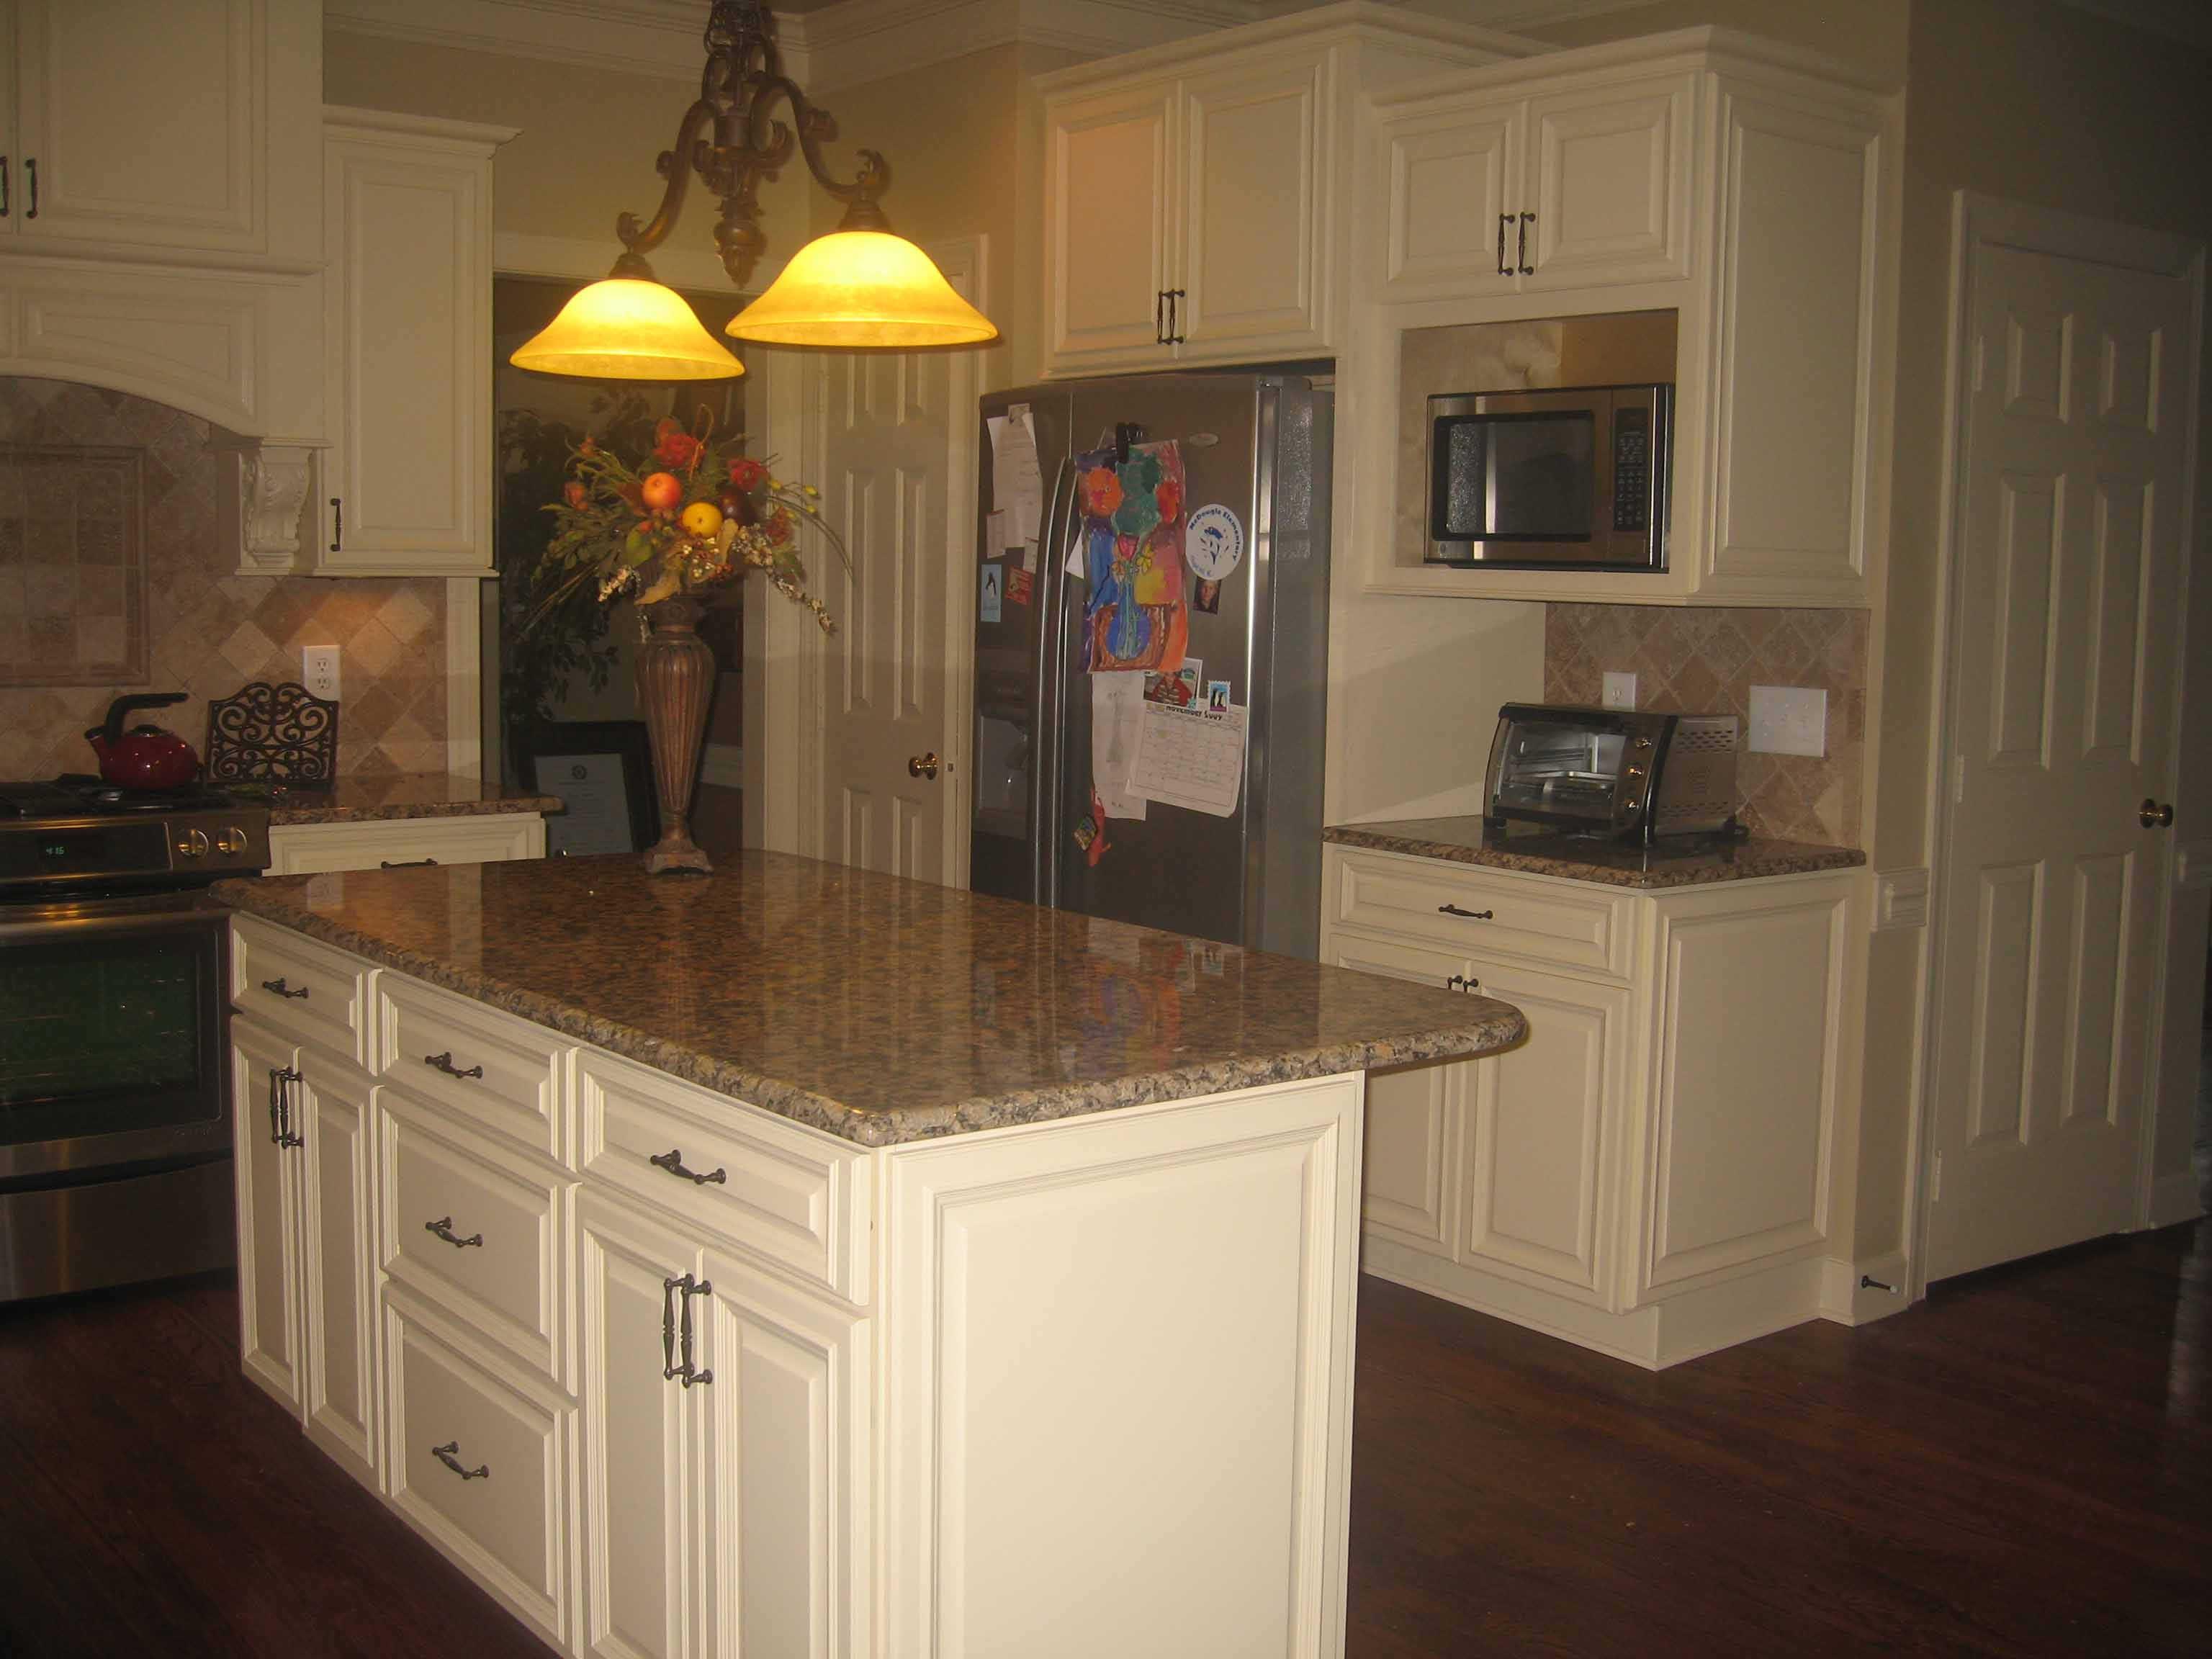 RTA Kitchen Cabinets French Vanilla rta kitchen cabinets online Buy cabinets online